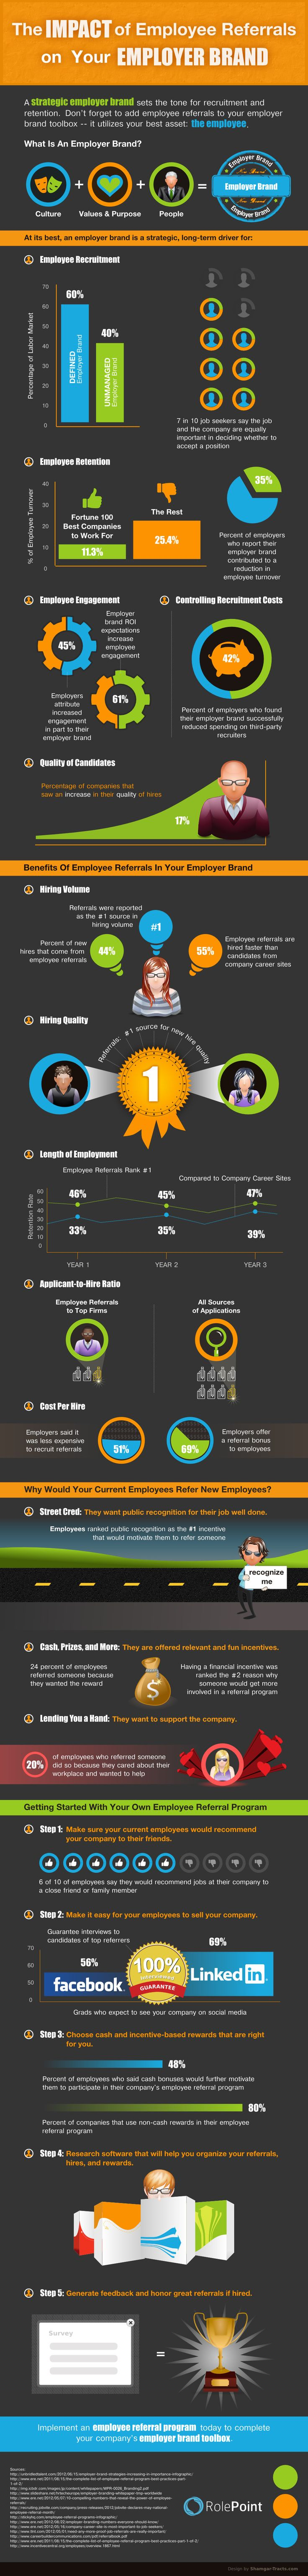 images about recruiting statistics technology how employee referrals can impact your employer brand